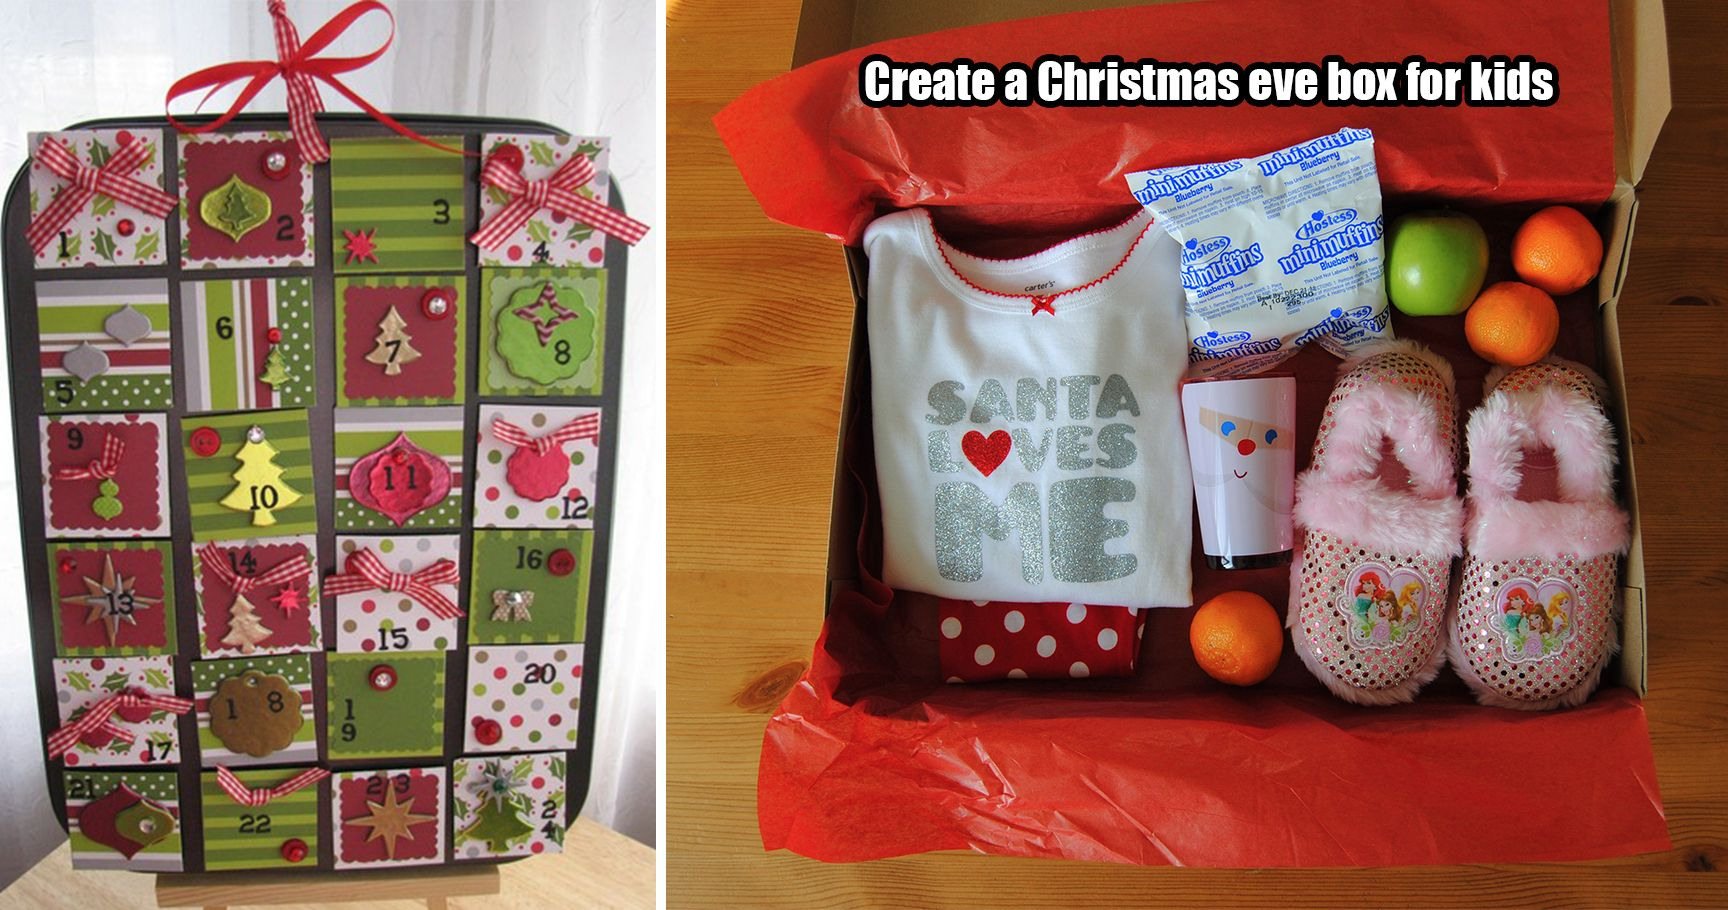 18 Useful Hacks That Will Be A Lifesaver For Parents This Christmas